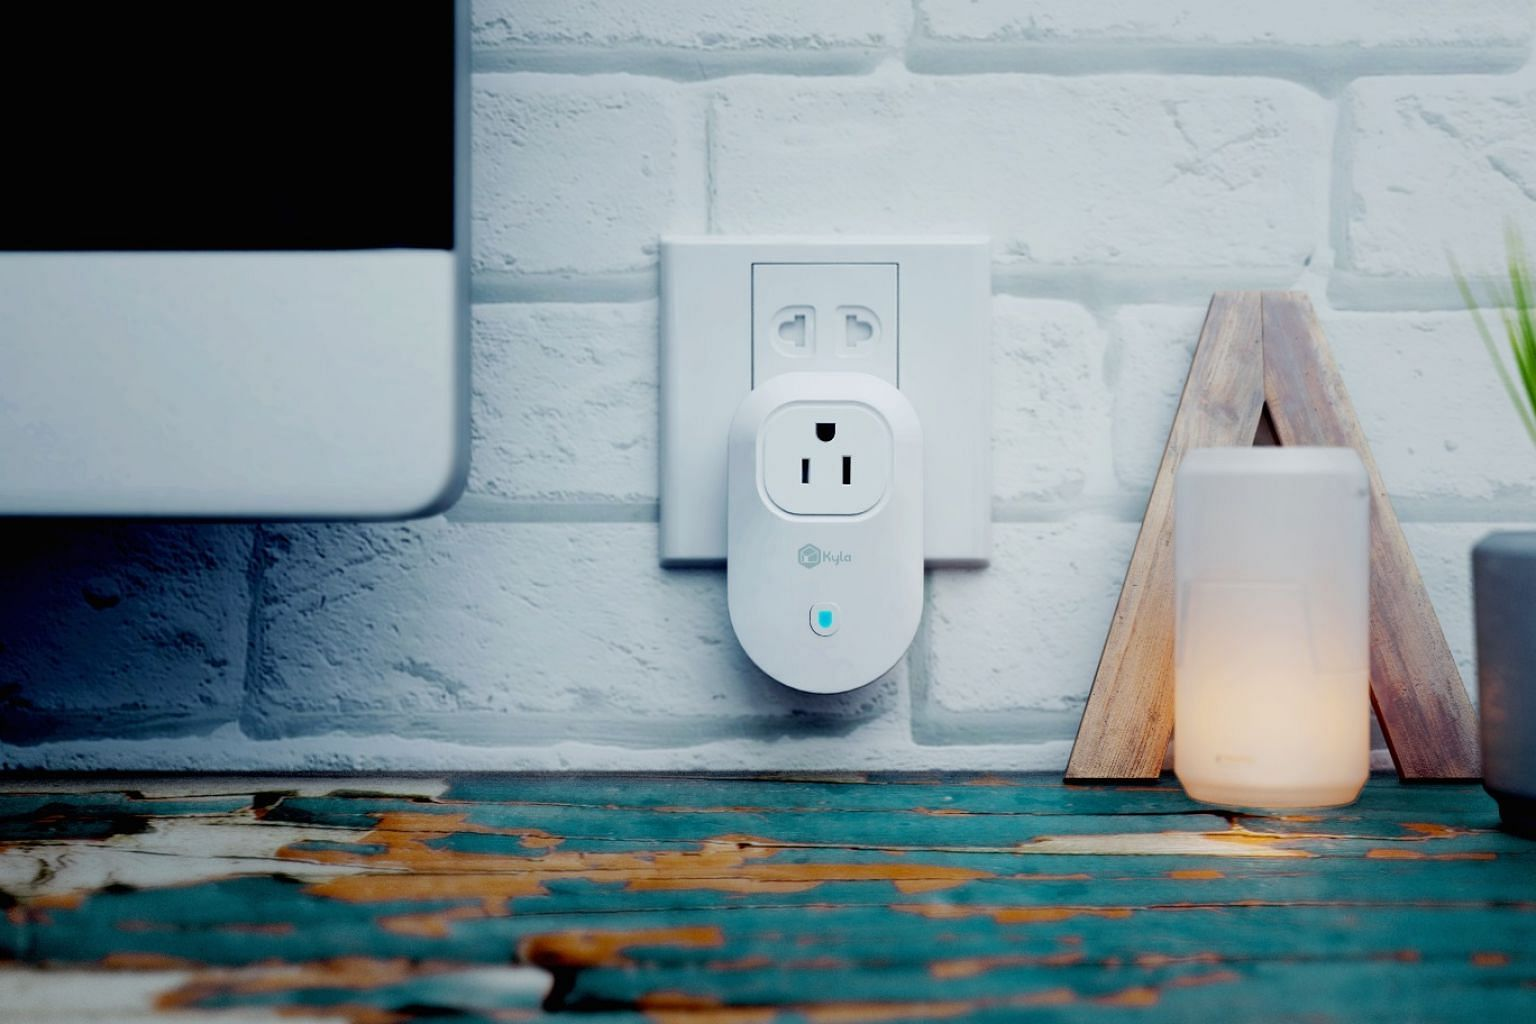 Control your home appliances remotely by plugging them into a Kyla smart Wi-Fi plug.